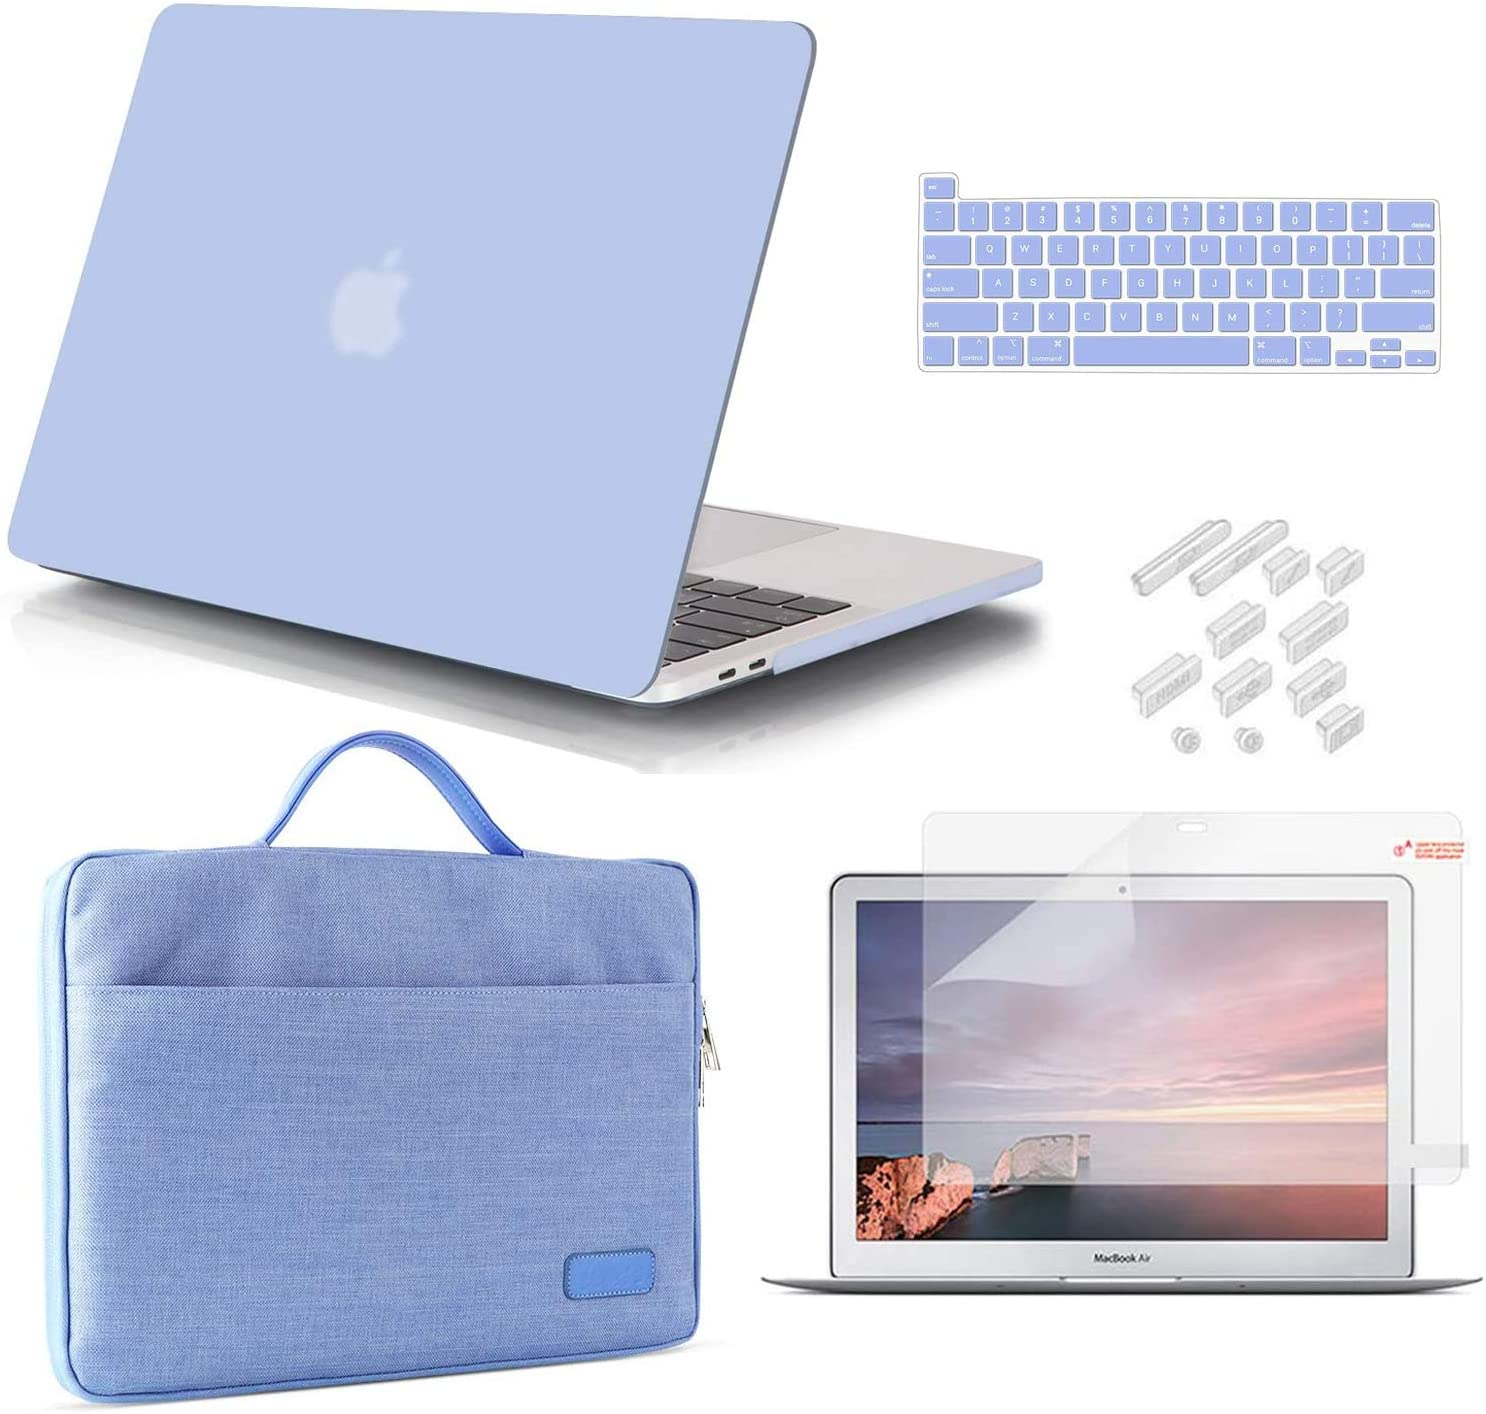 iCasso MacBook Pro 13 Inch Case 2020 Release Model A2338M1 /A2251/A2289 Bundle 5 in 1, Hard Shell Case, Sleeve, Screen Protector, Keyboard Cover&Dust Plug Compatible MacBook Pro 13'' - Serenity Blue